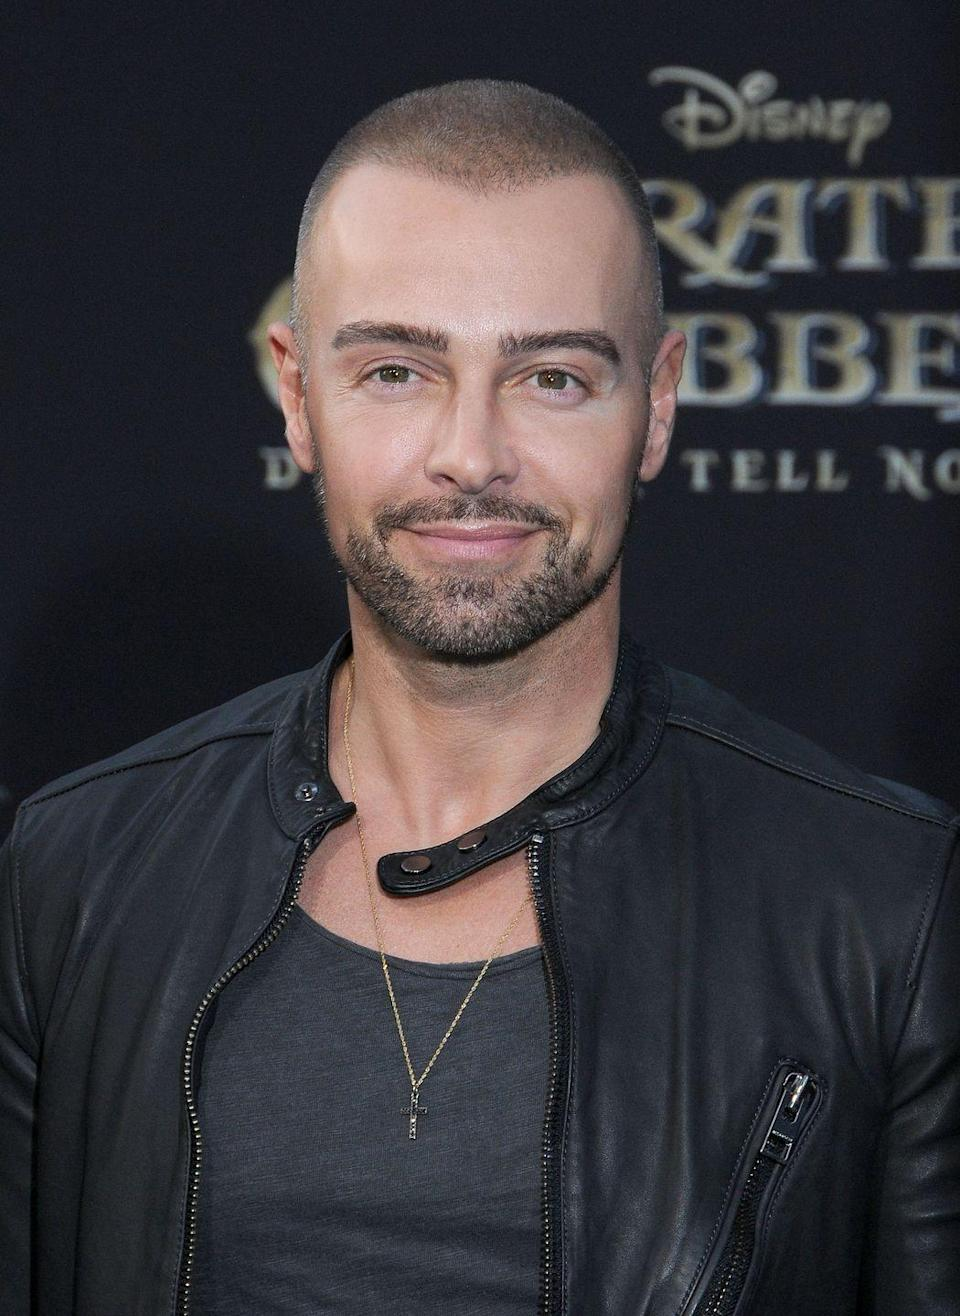 <p>From 2010 to 2015, Joey starred on the show <em>Melissa & Joey</em> with Melissa Joan Hart, and he's still making movies today. <br></p>